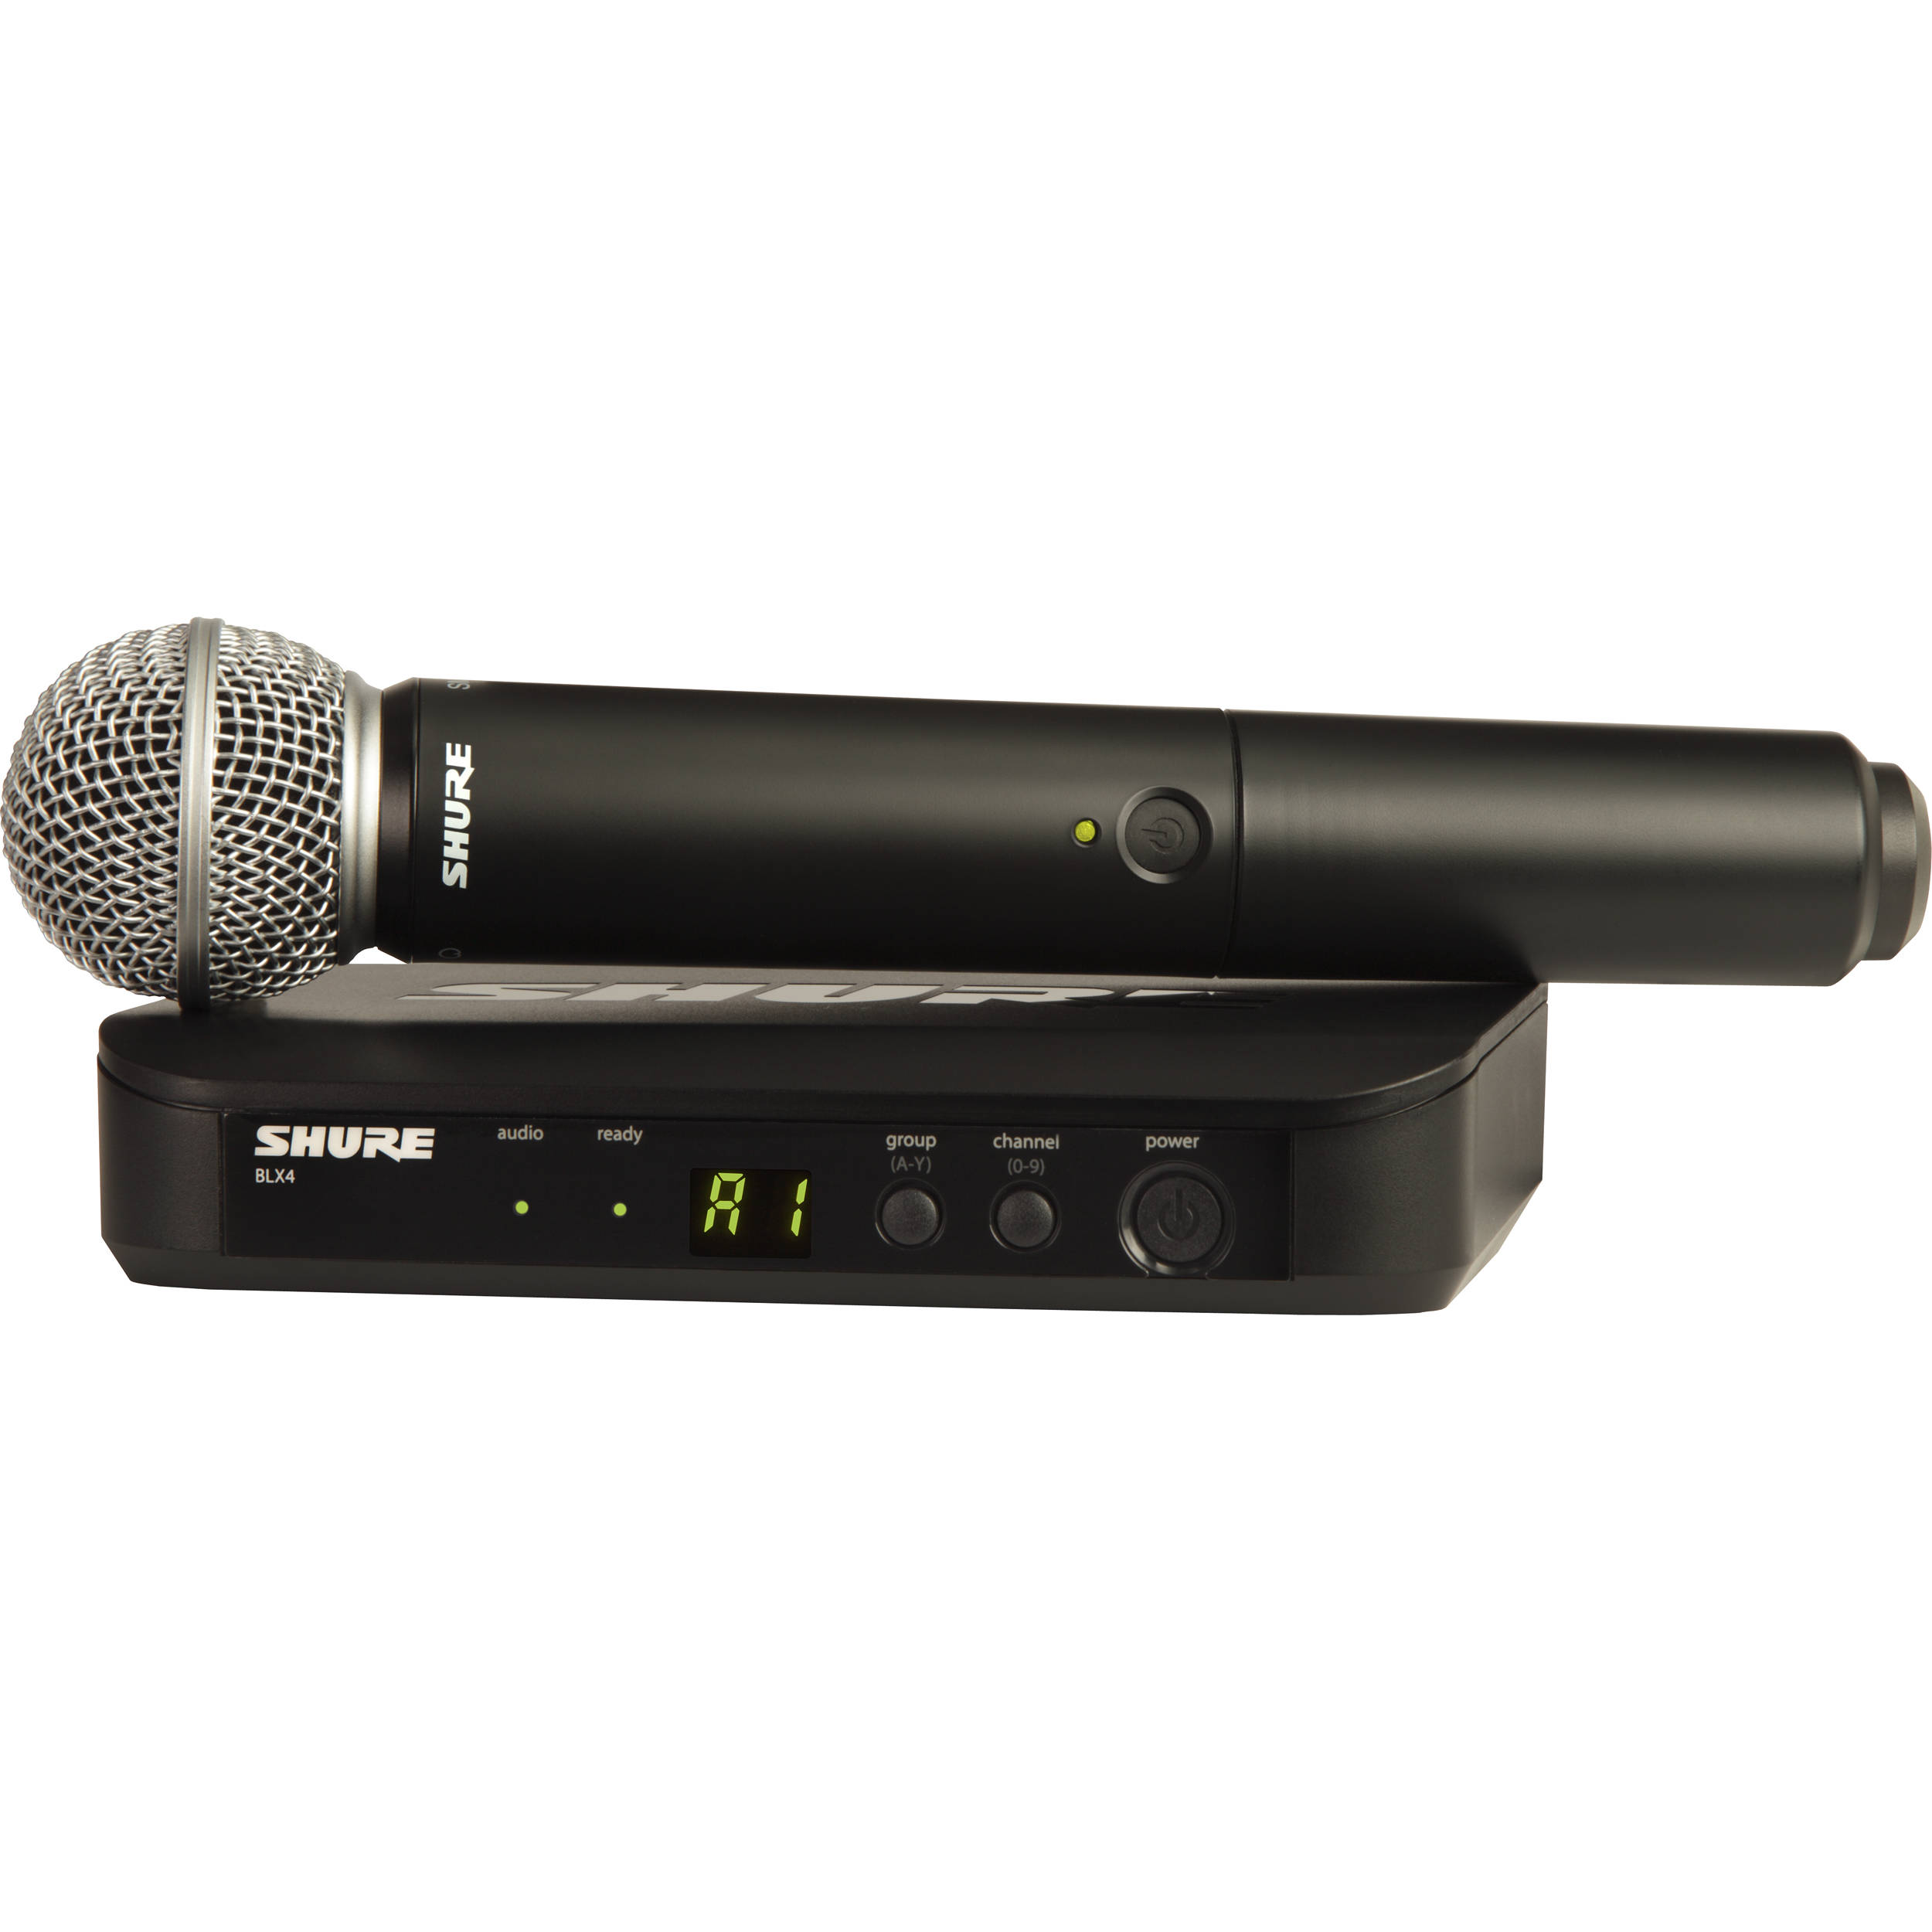 shure_blx24_sm58_h10_blx24_vocal_wireless_system_1194972